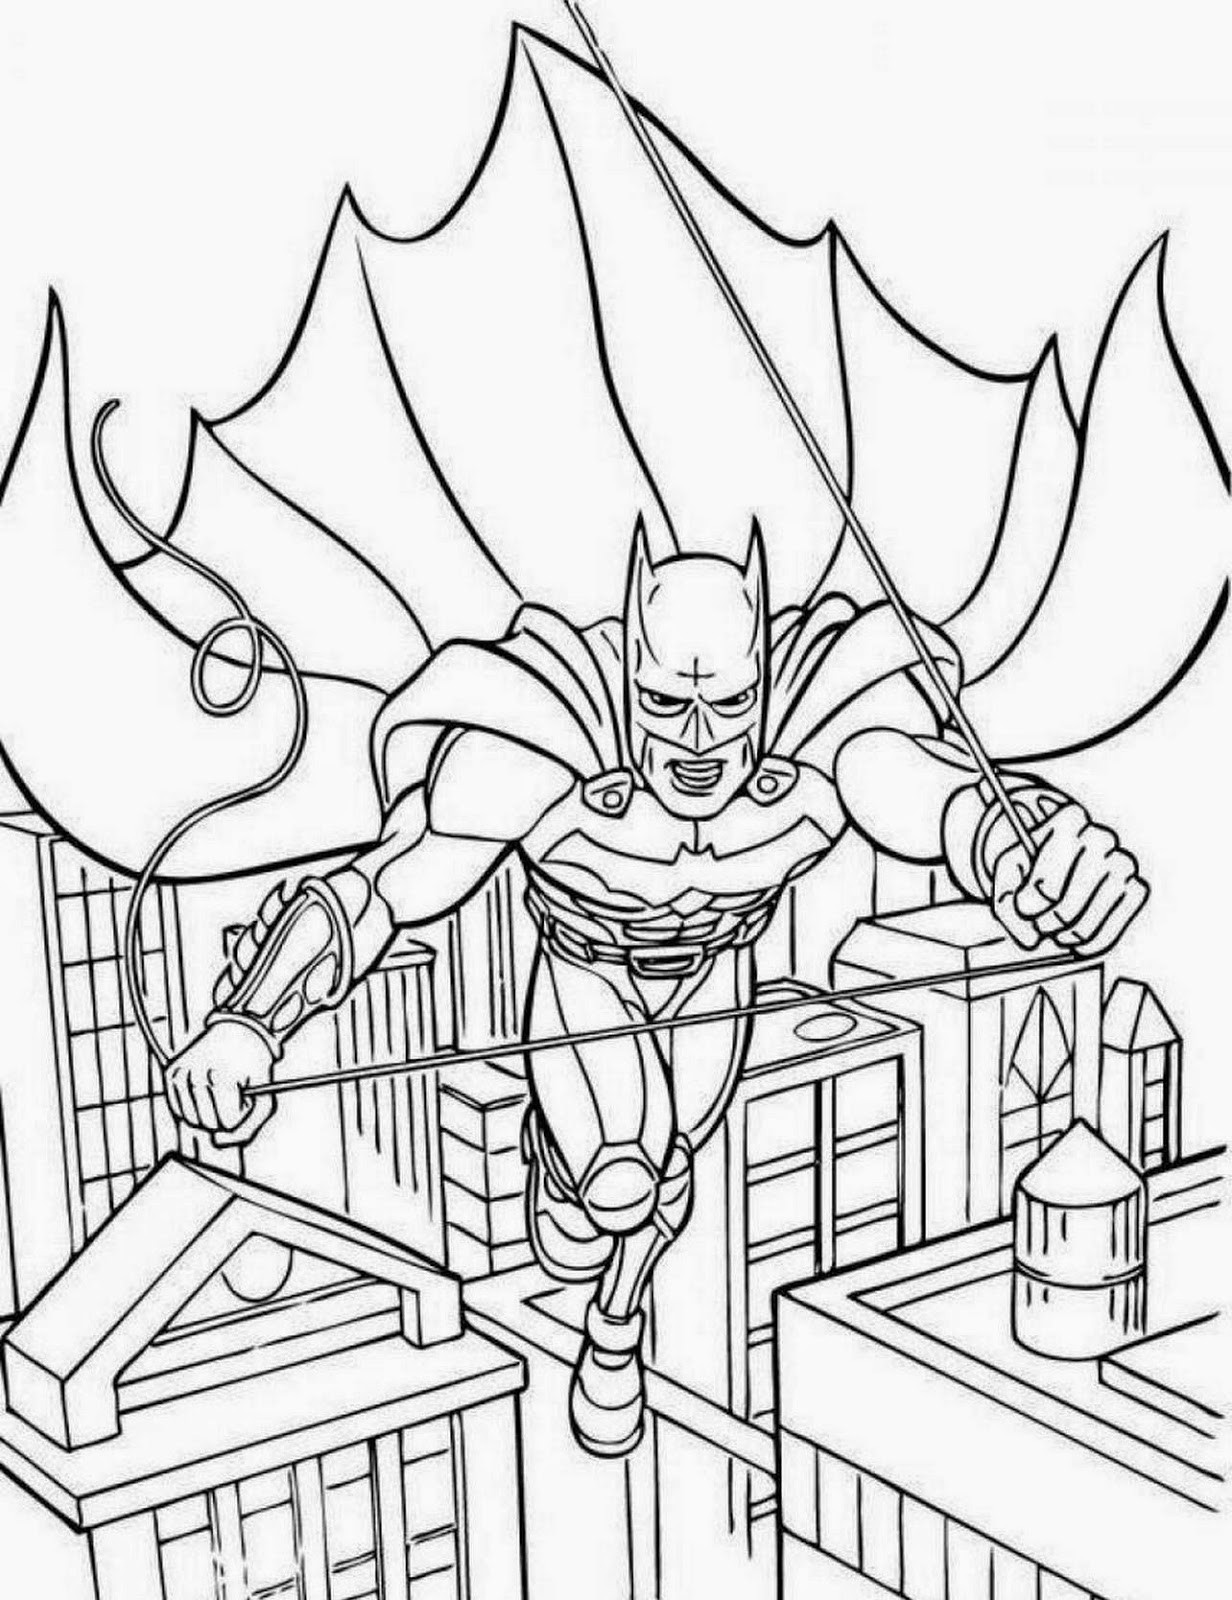 1232x1600 Batmobile Coloring Pages Free Fiscalreform Beautiful